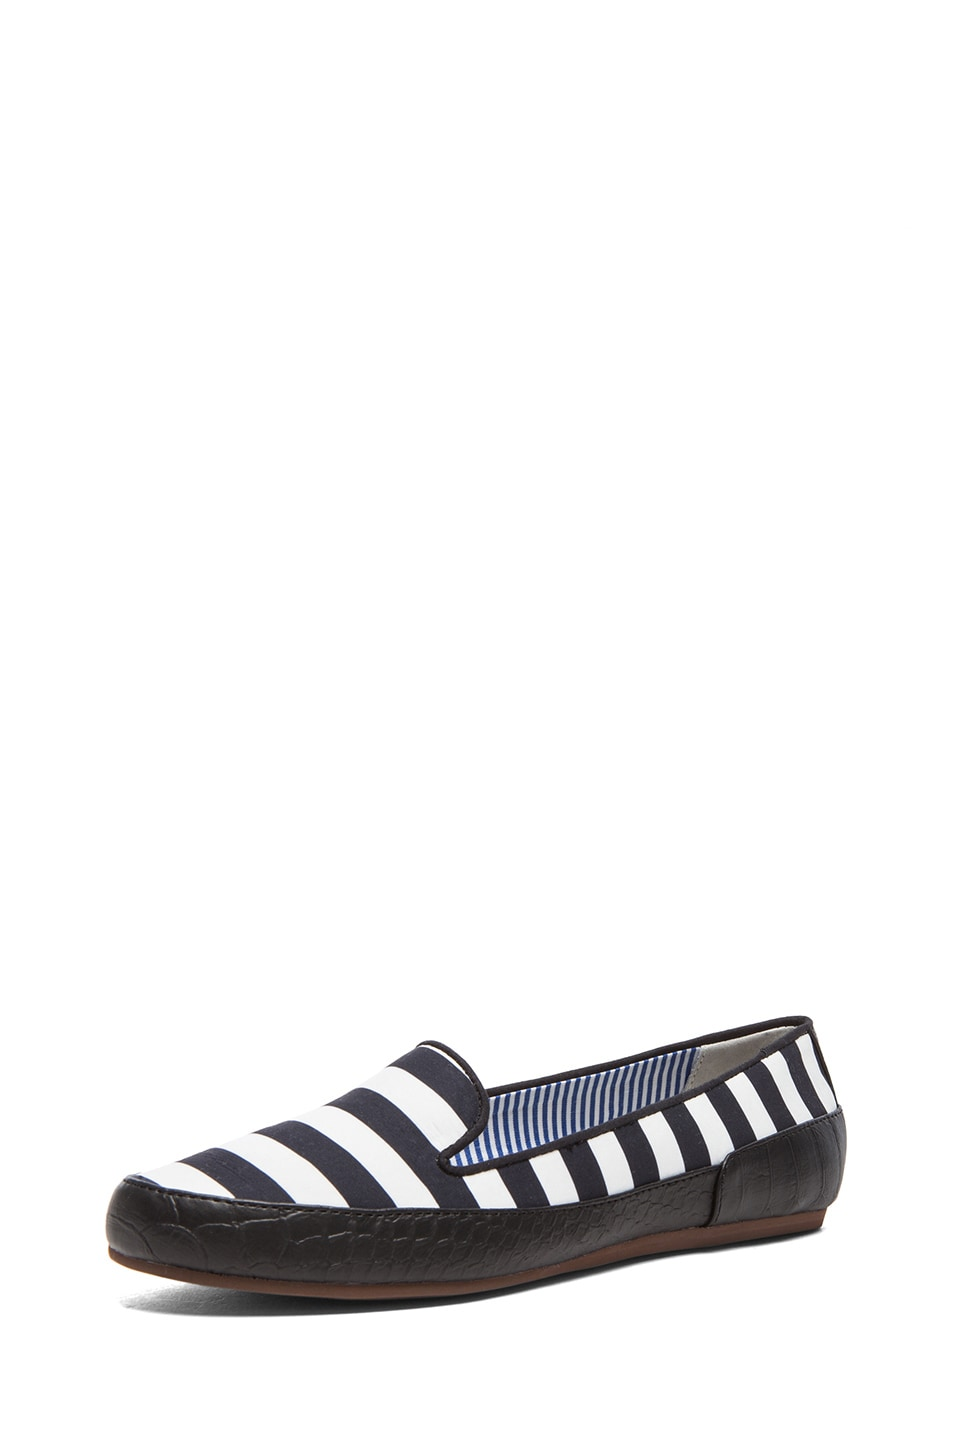 Image 2 of Charles Philip Shanghai Gaby Cotton Flats in Black Stripes